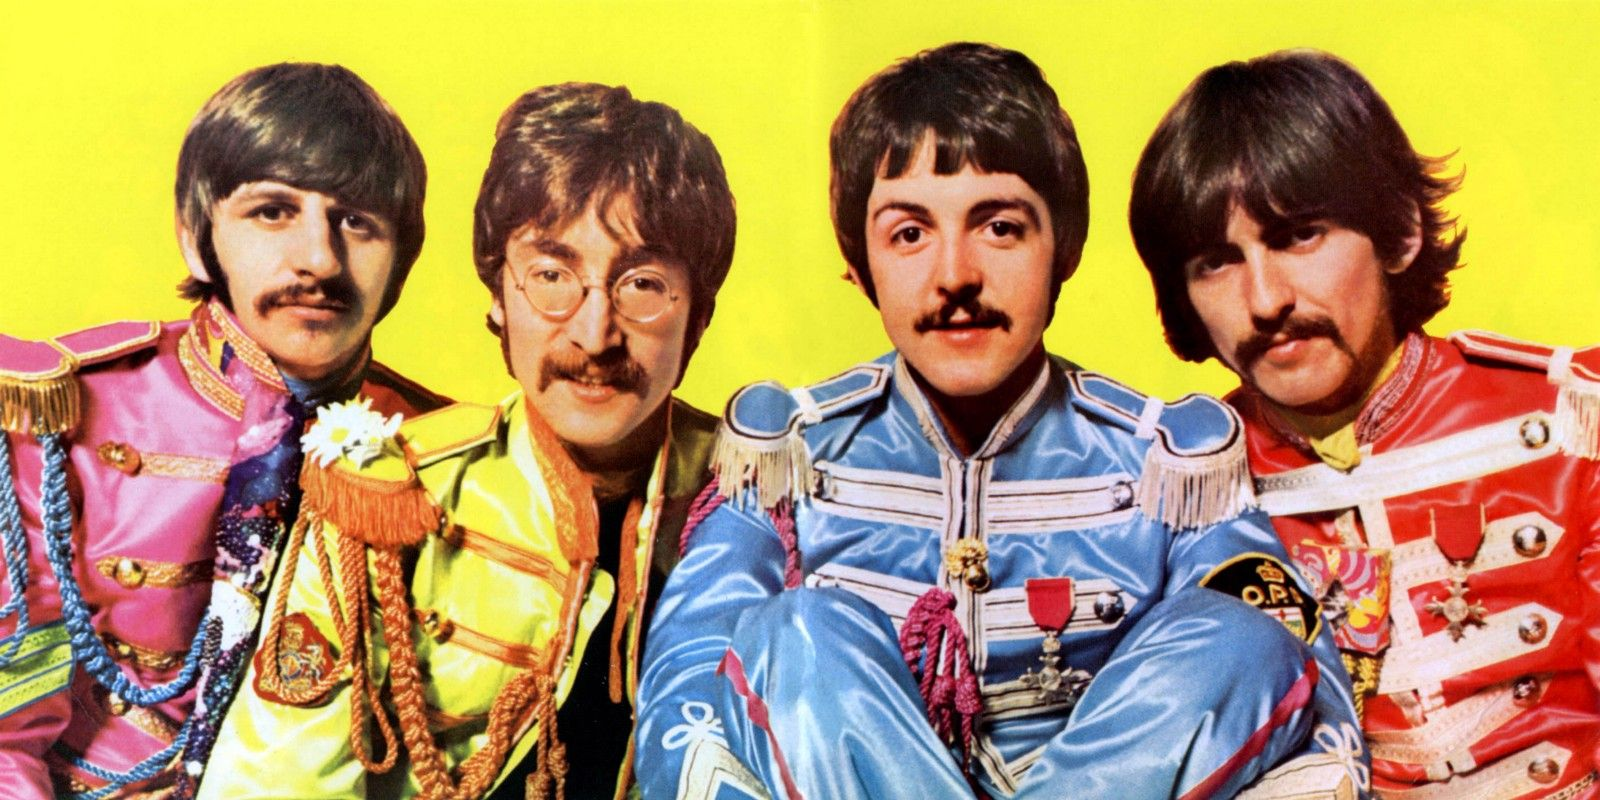 Related image Beatles sgt pepper, The beatles, Sgt pepper